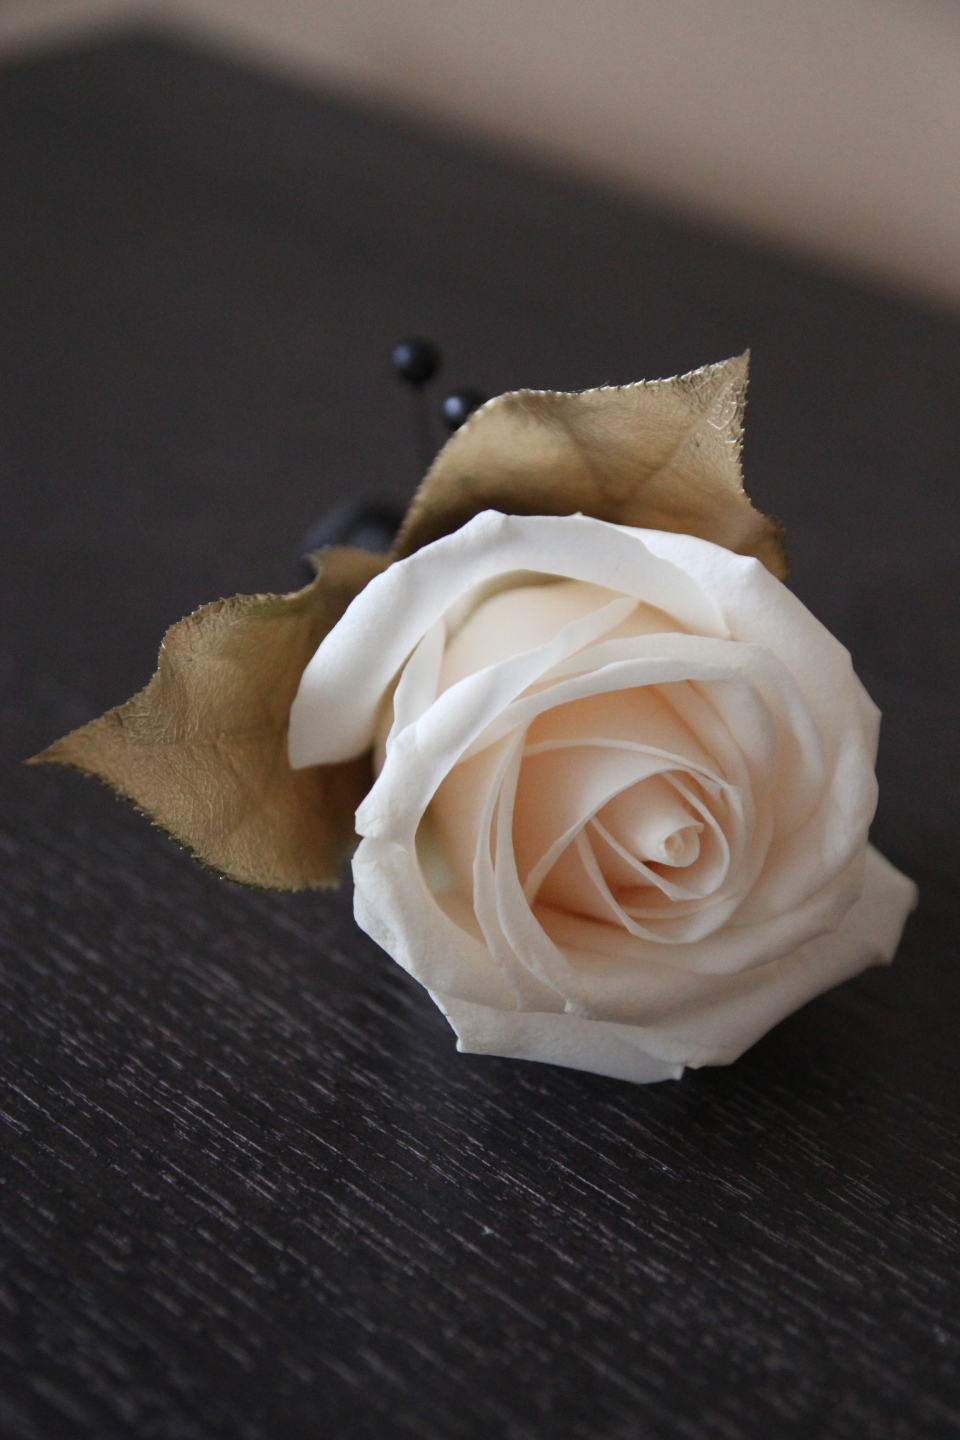 Groom's rose boutonniere accented with gold leaves